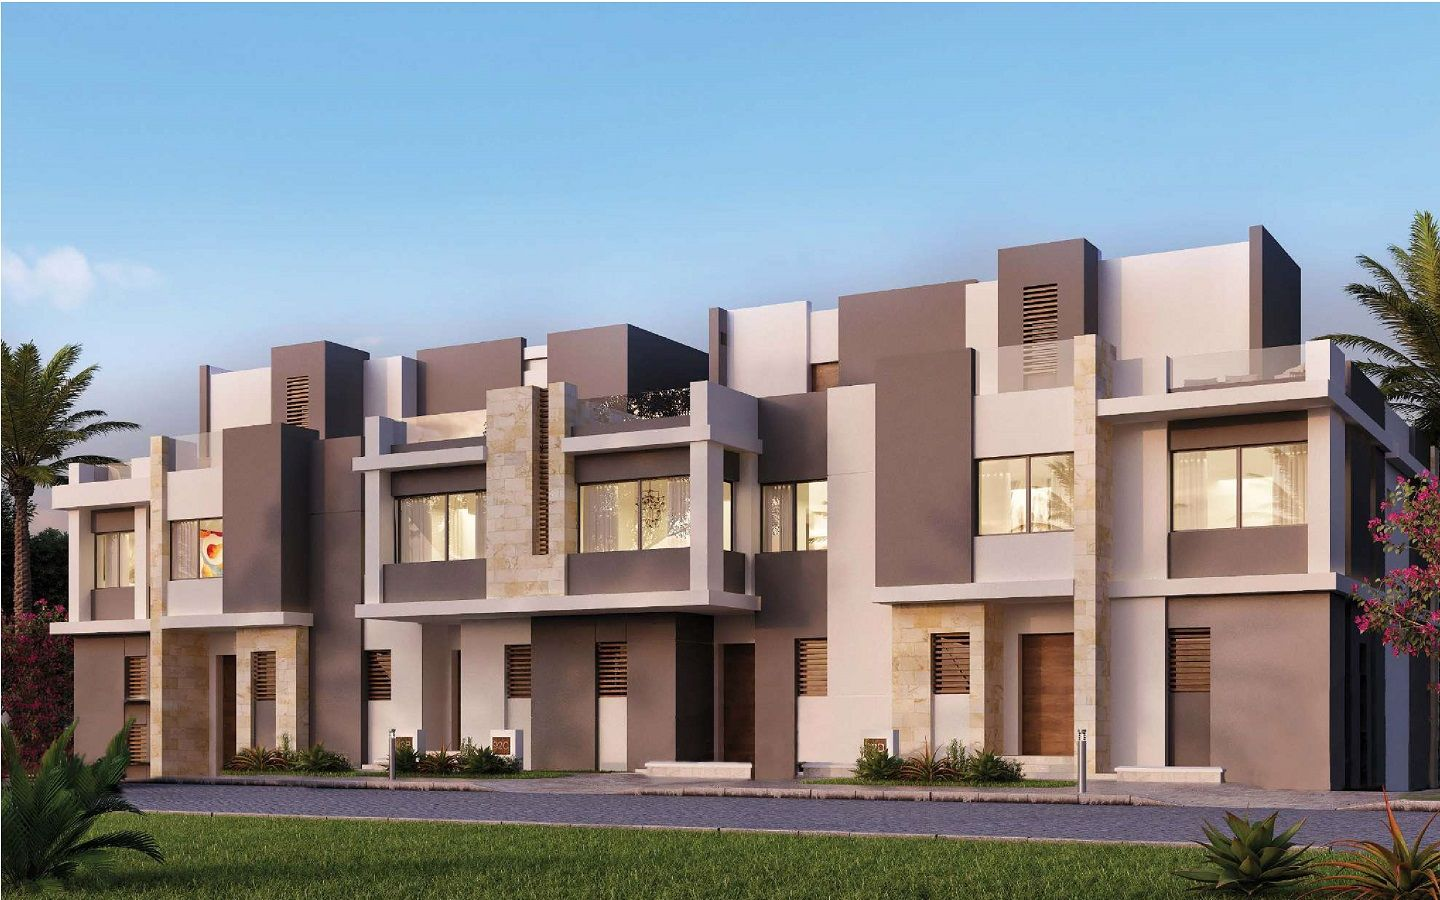 Tawny 6 October Compound By Hyde Park Developments Town House Twin House Stand Alone Villa Tawny Master In 2020 House Styles Real Estate Companies Real Estate